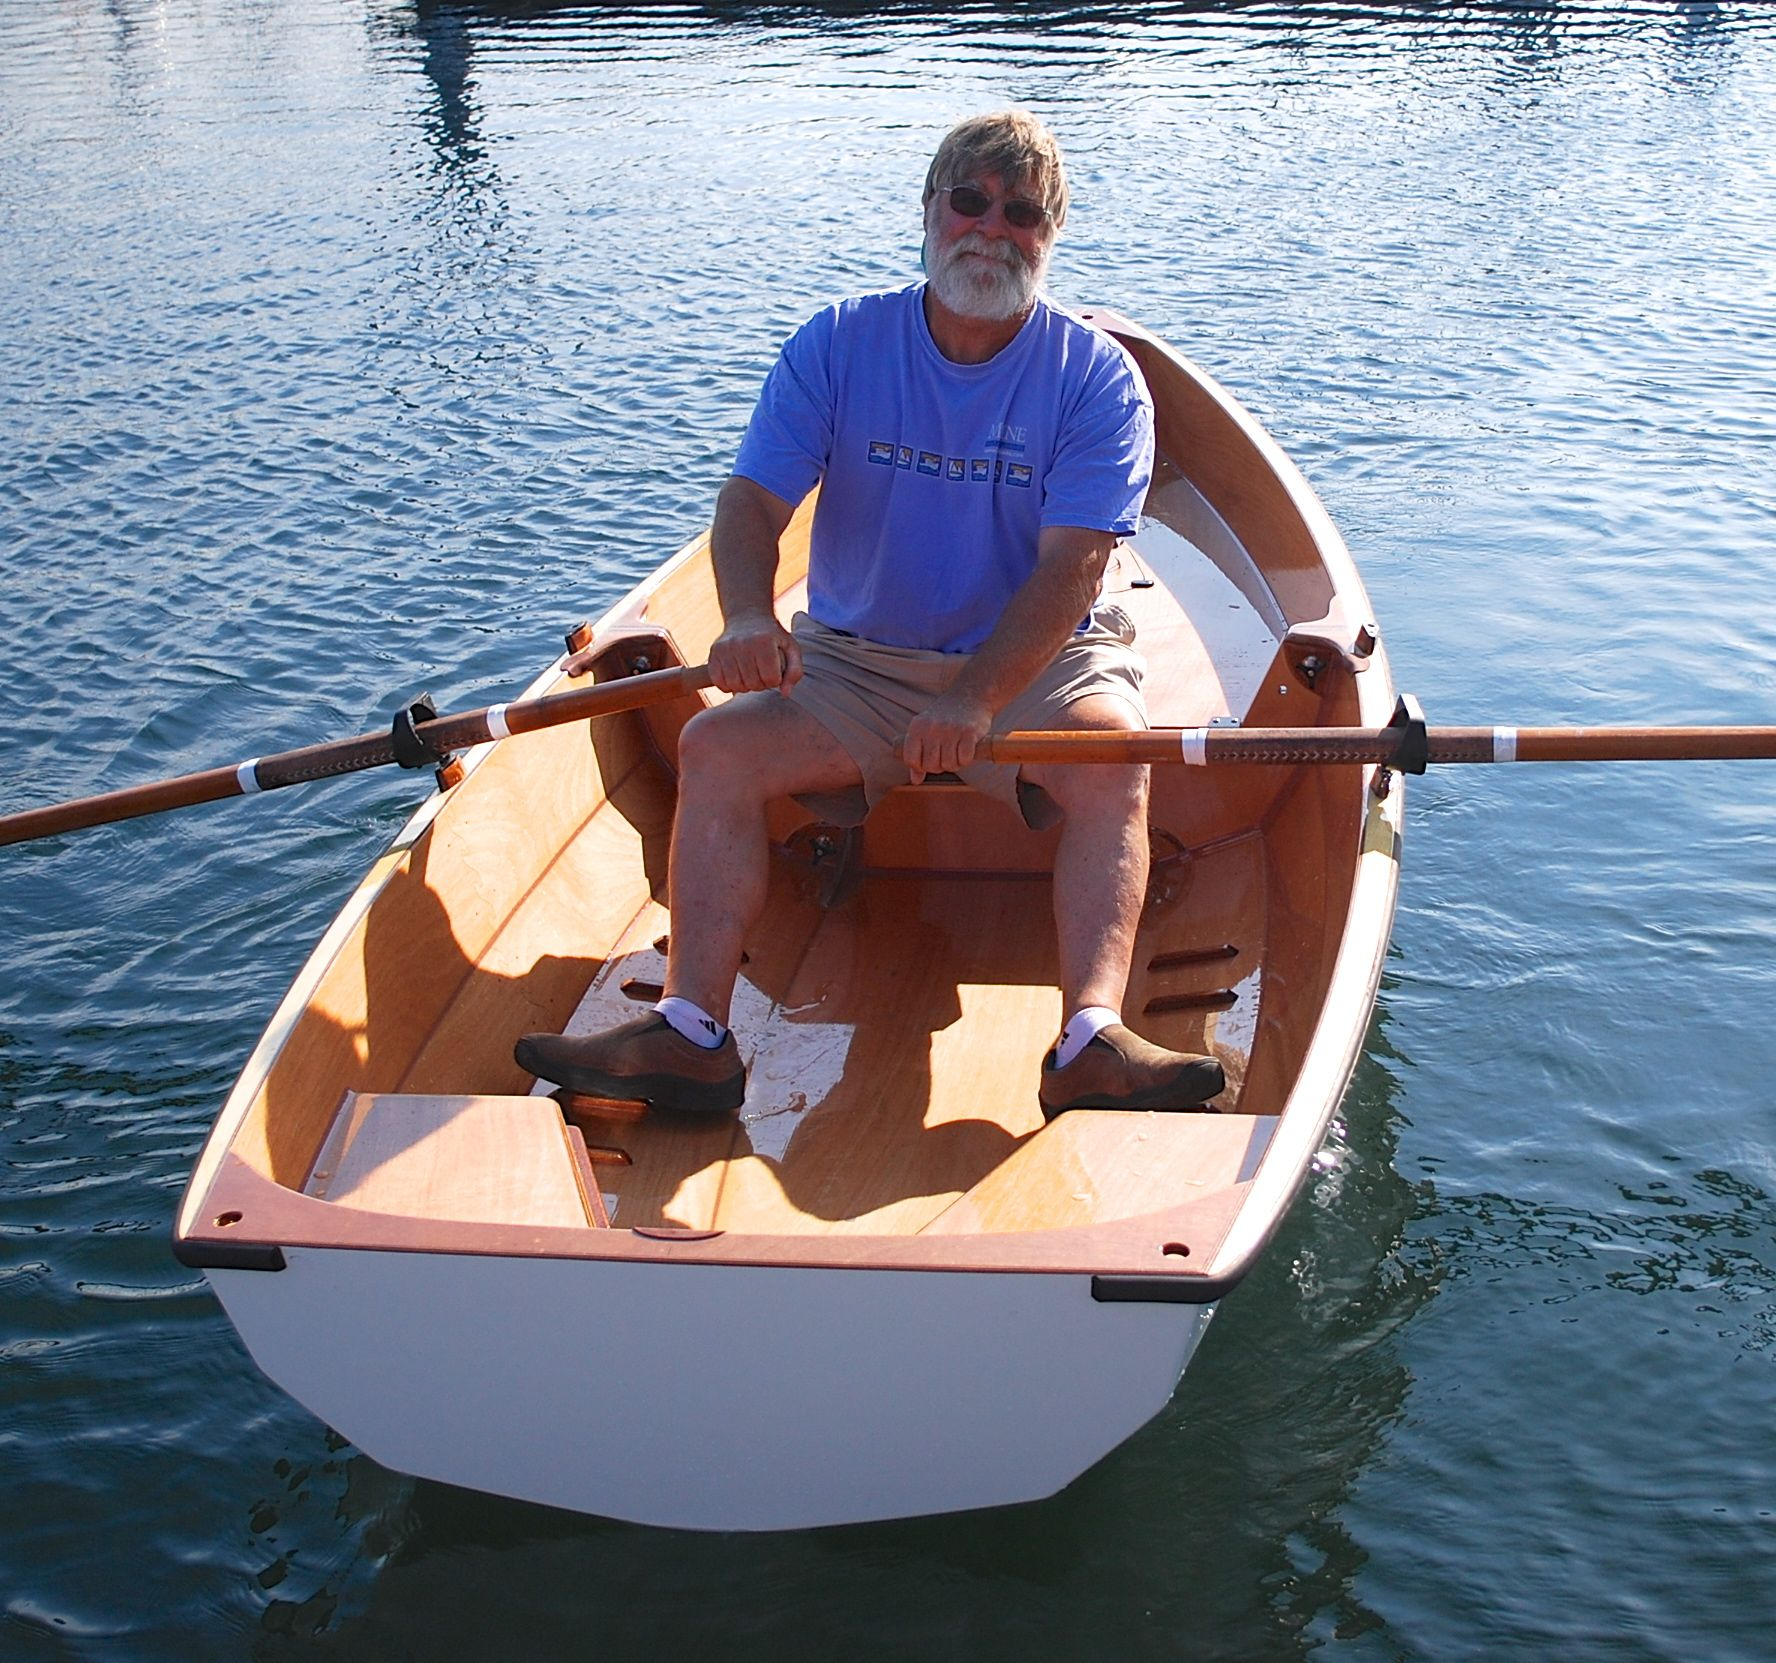 Port Townsend Watercraft BLOG